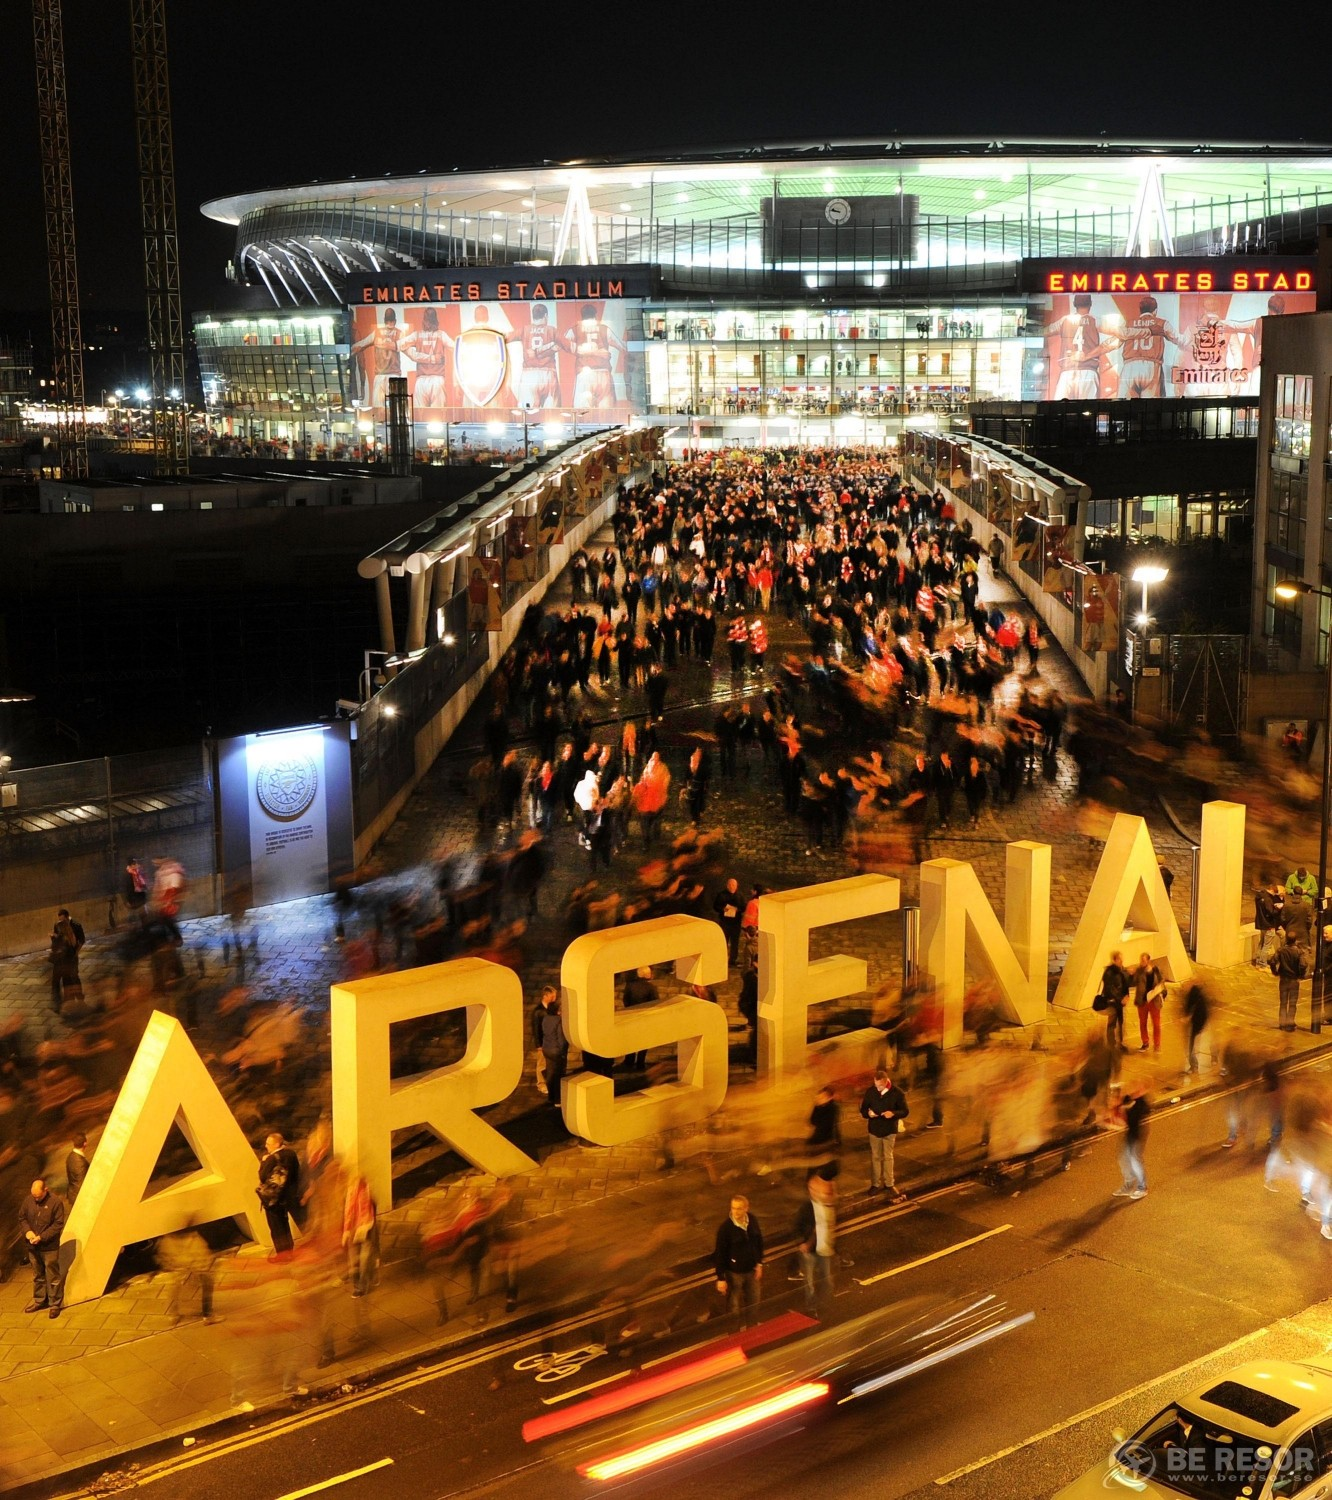 Emirates Stadium bild